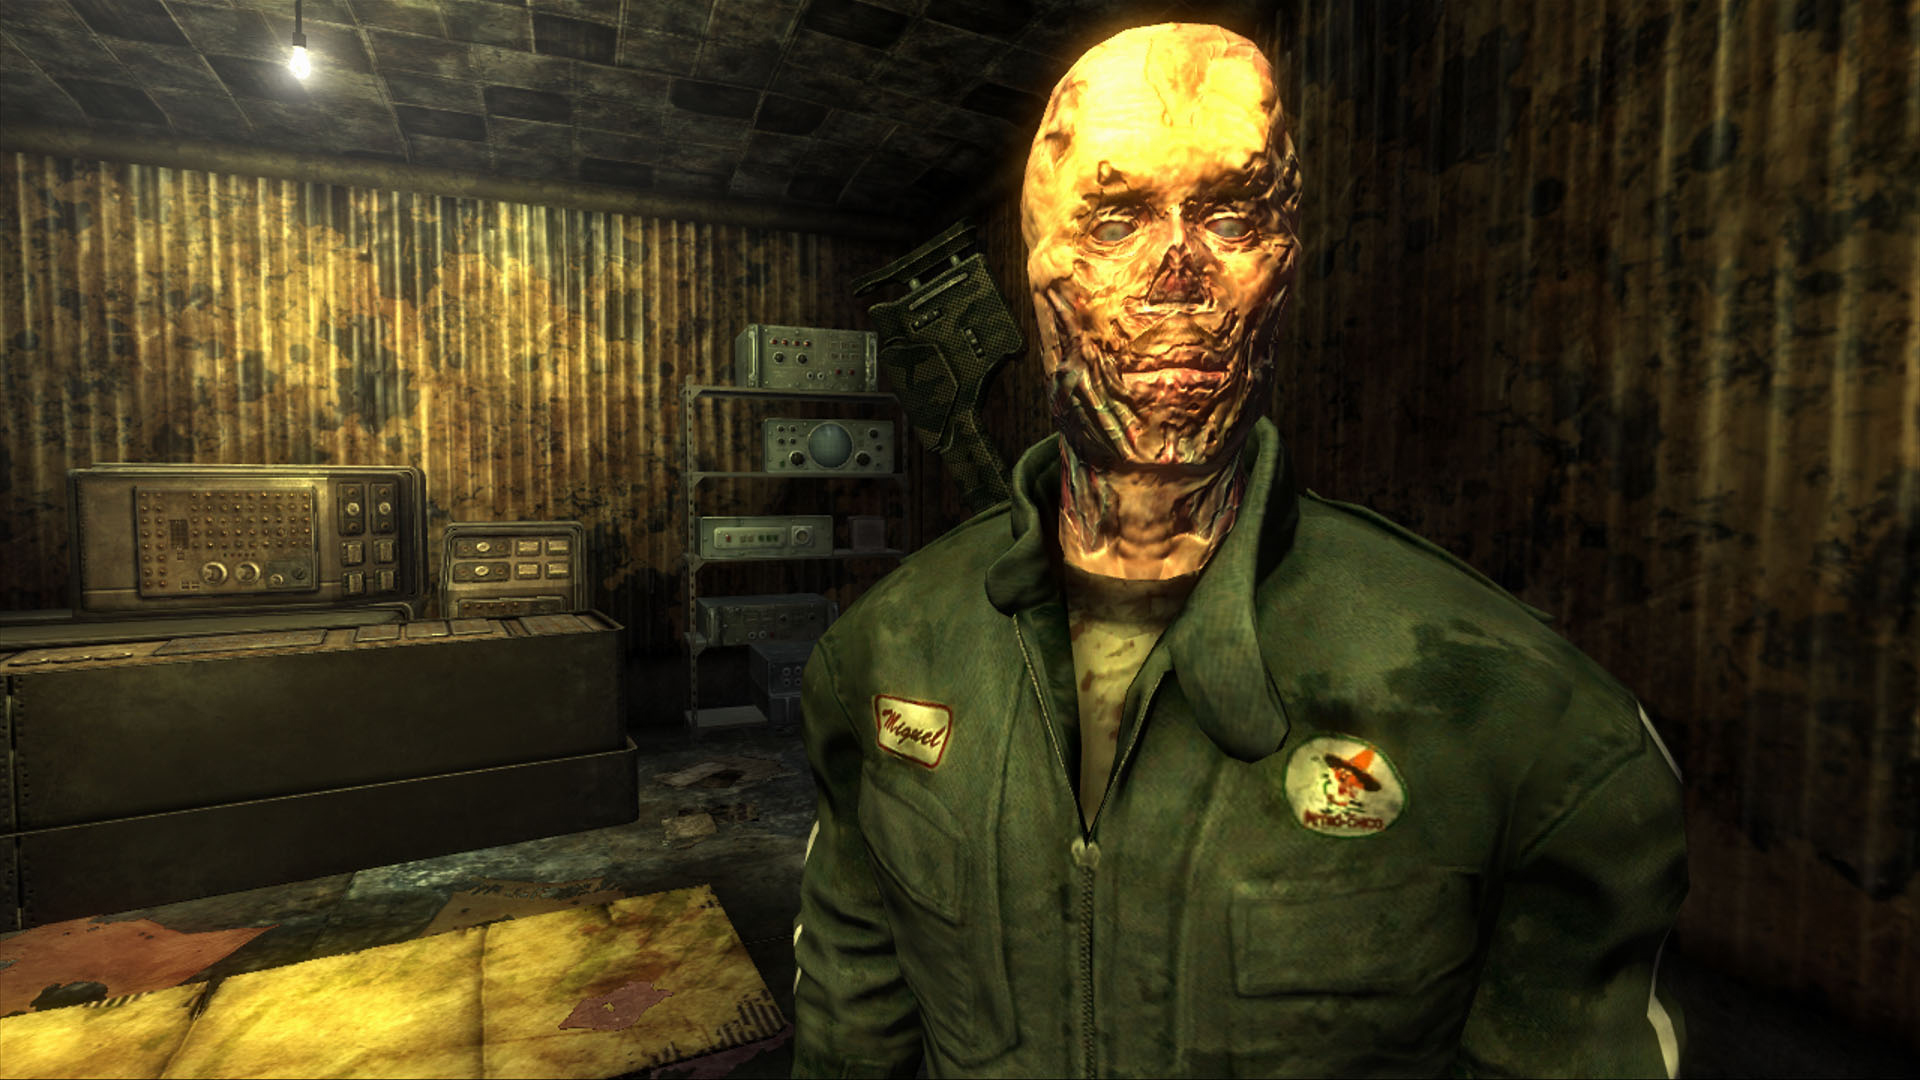 FNV Reveal Online Raul the Ghoul